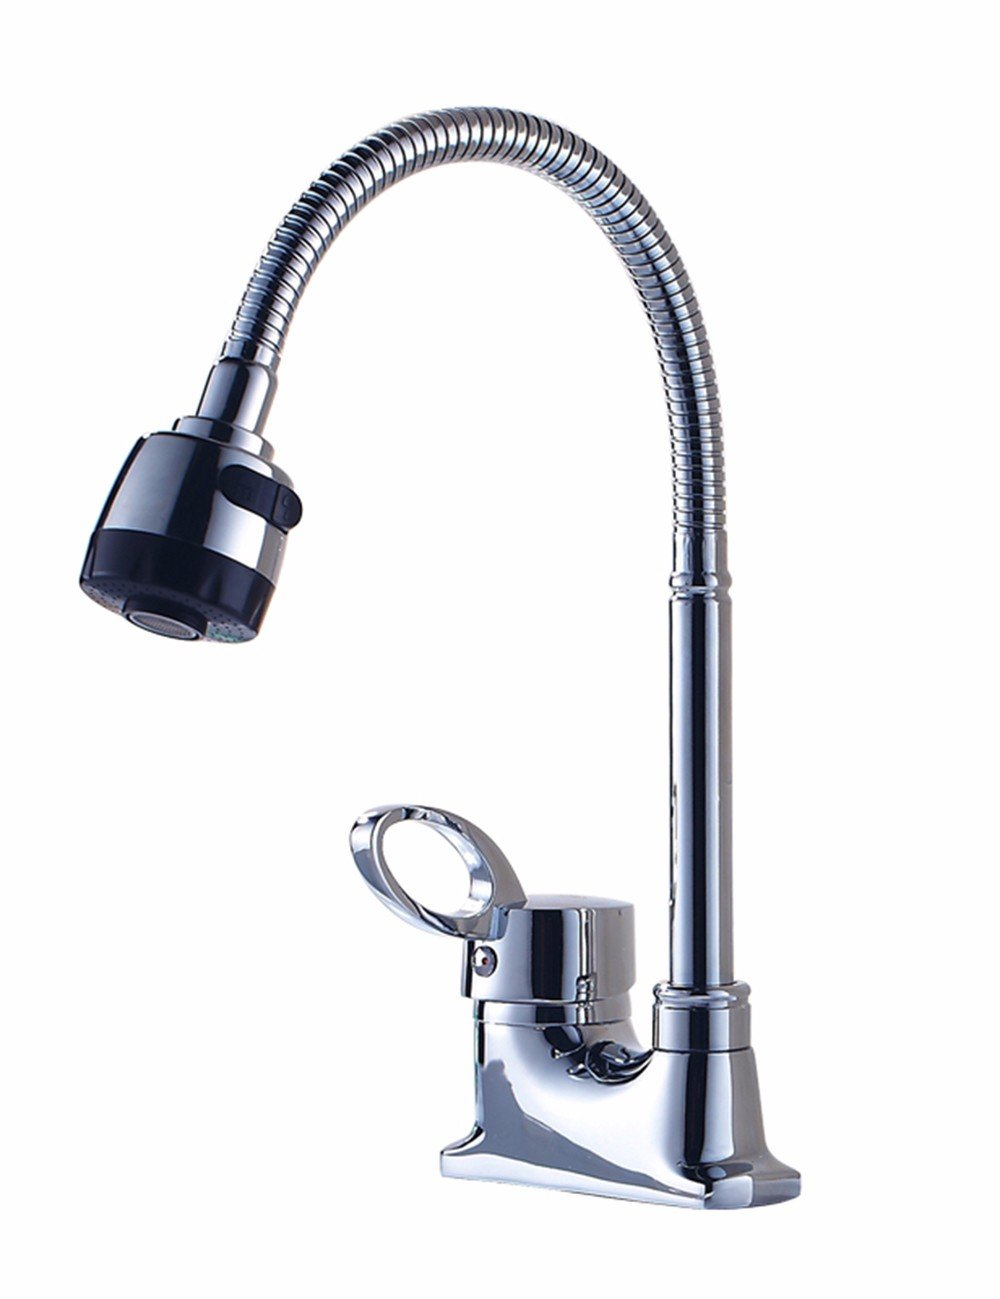 LHbox Basin Mixer Tap Bathroom Sink Faucet The fine copper faucet hot and cold Two holes basin faucet telescopic single handle three hole 000 to tap the two dual-head hose Faucet